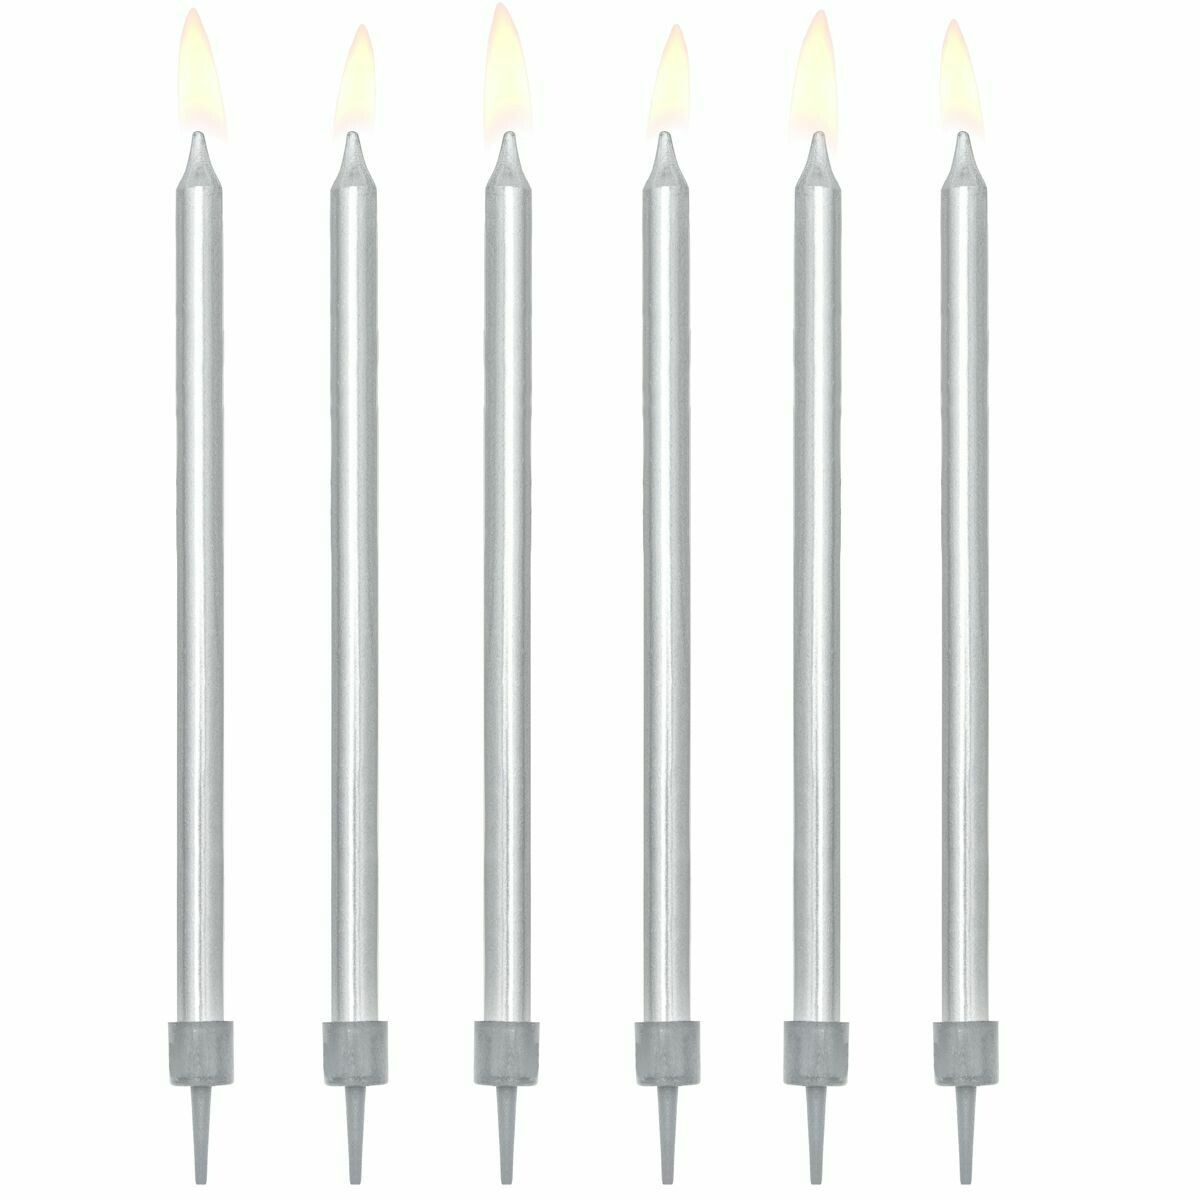 PartyDeco Birthday Candles -12εκ PLAIN SILVER 12 τεμ - Ασημί κεράκια